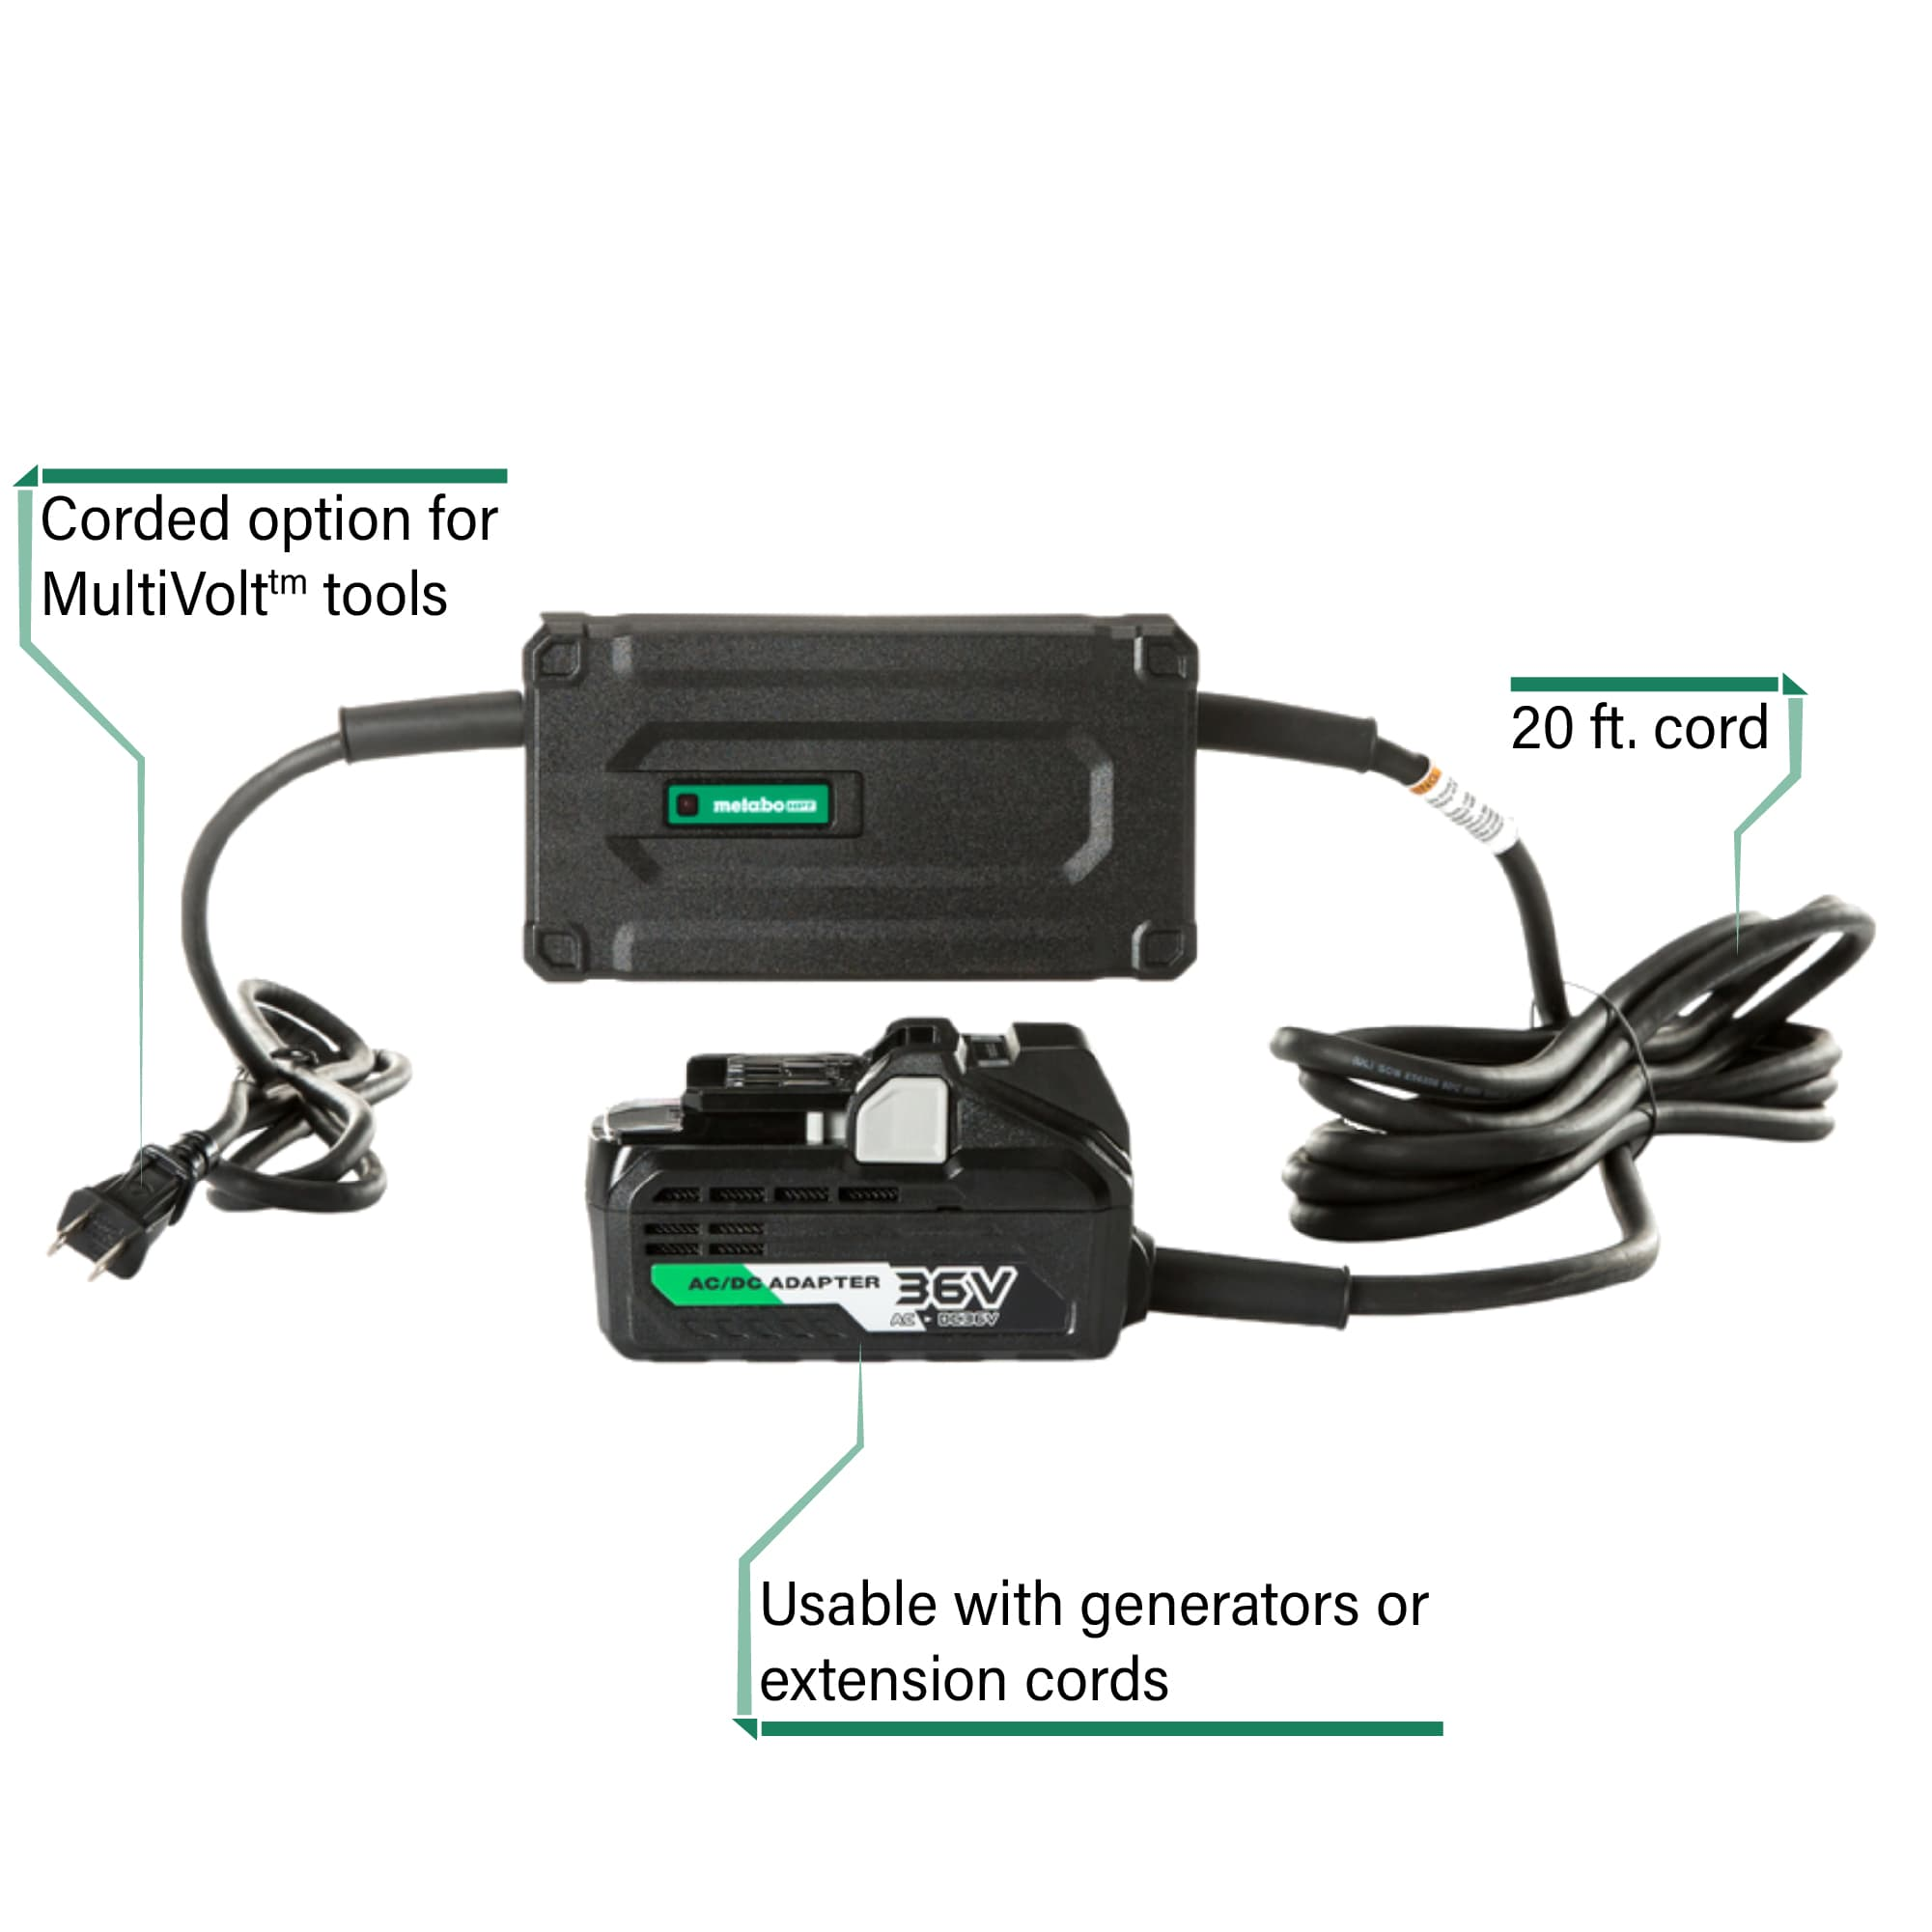 MultiVolt AC Adapter with callouts